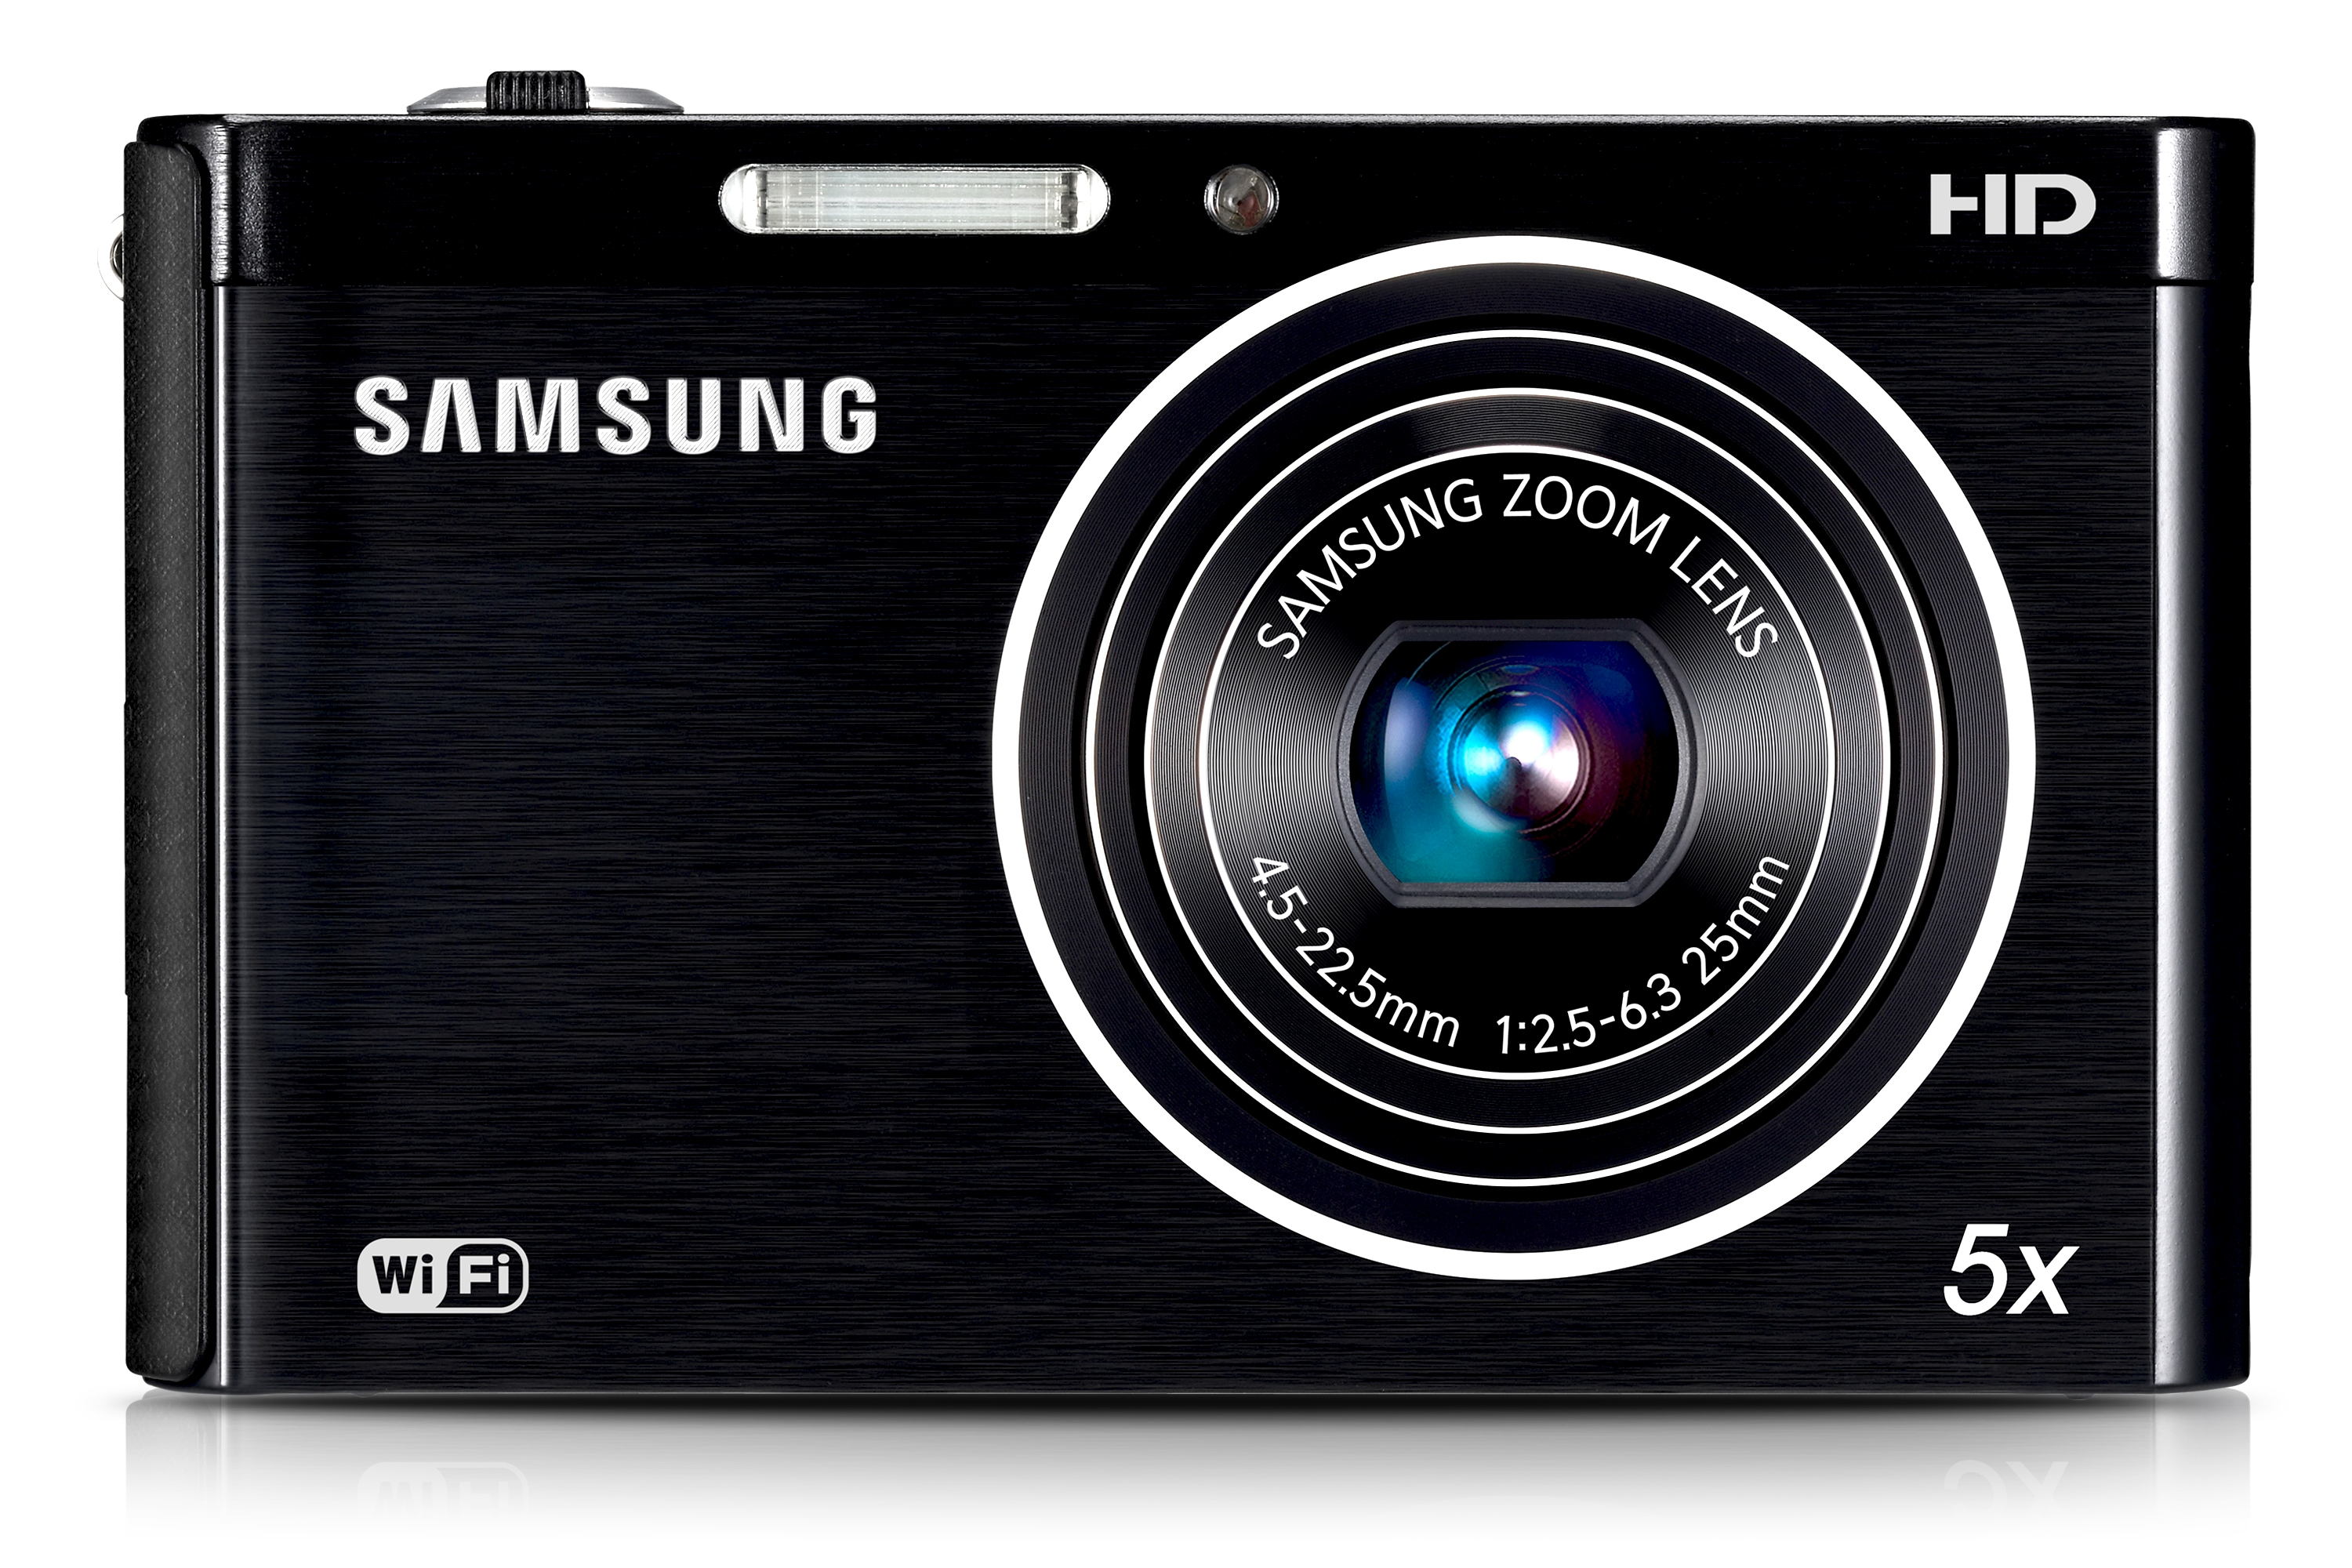 SAMSUNG DV300F Smart Camera Front black